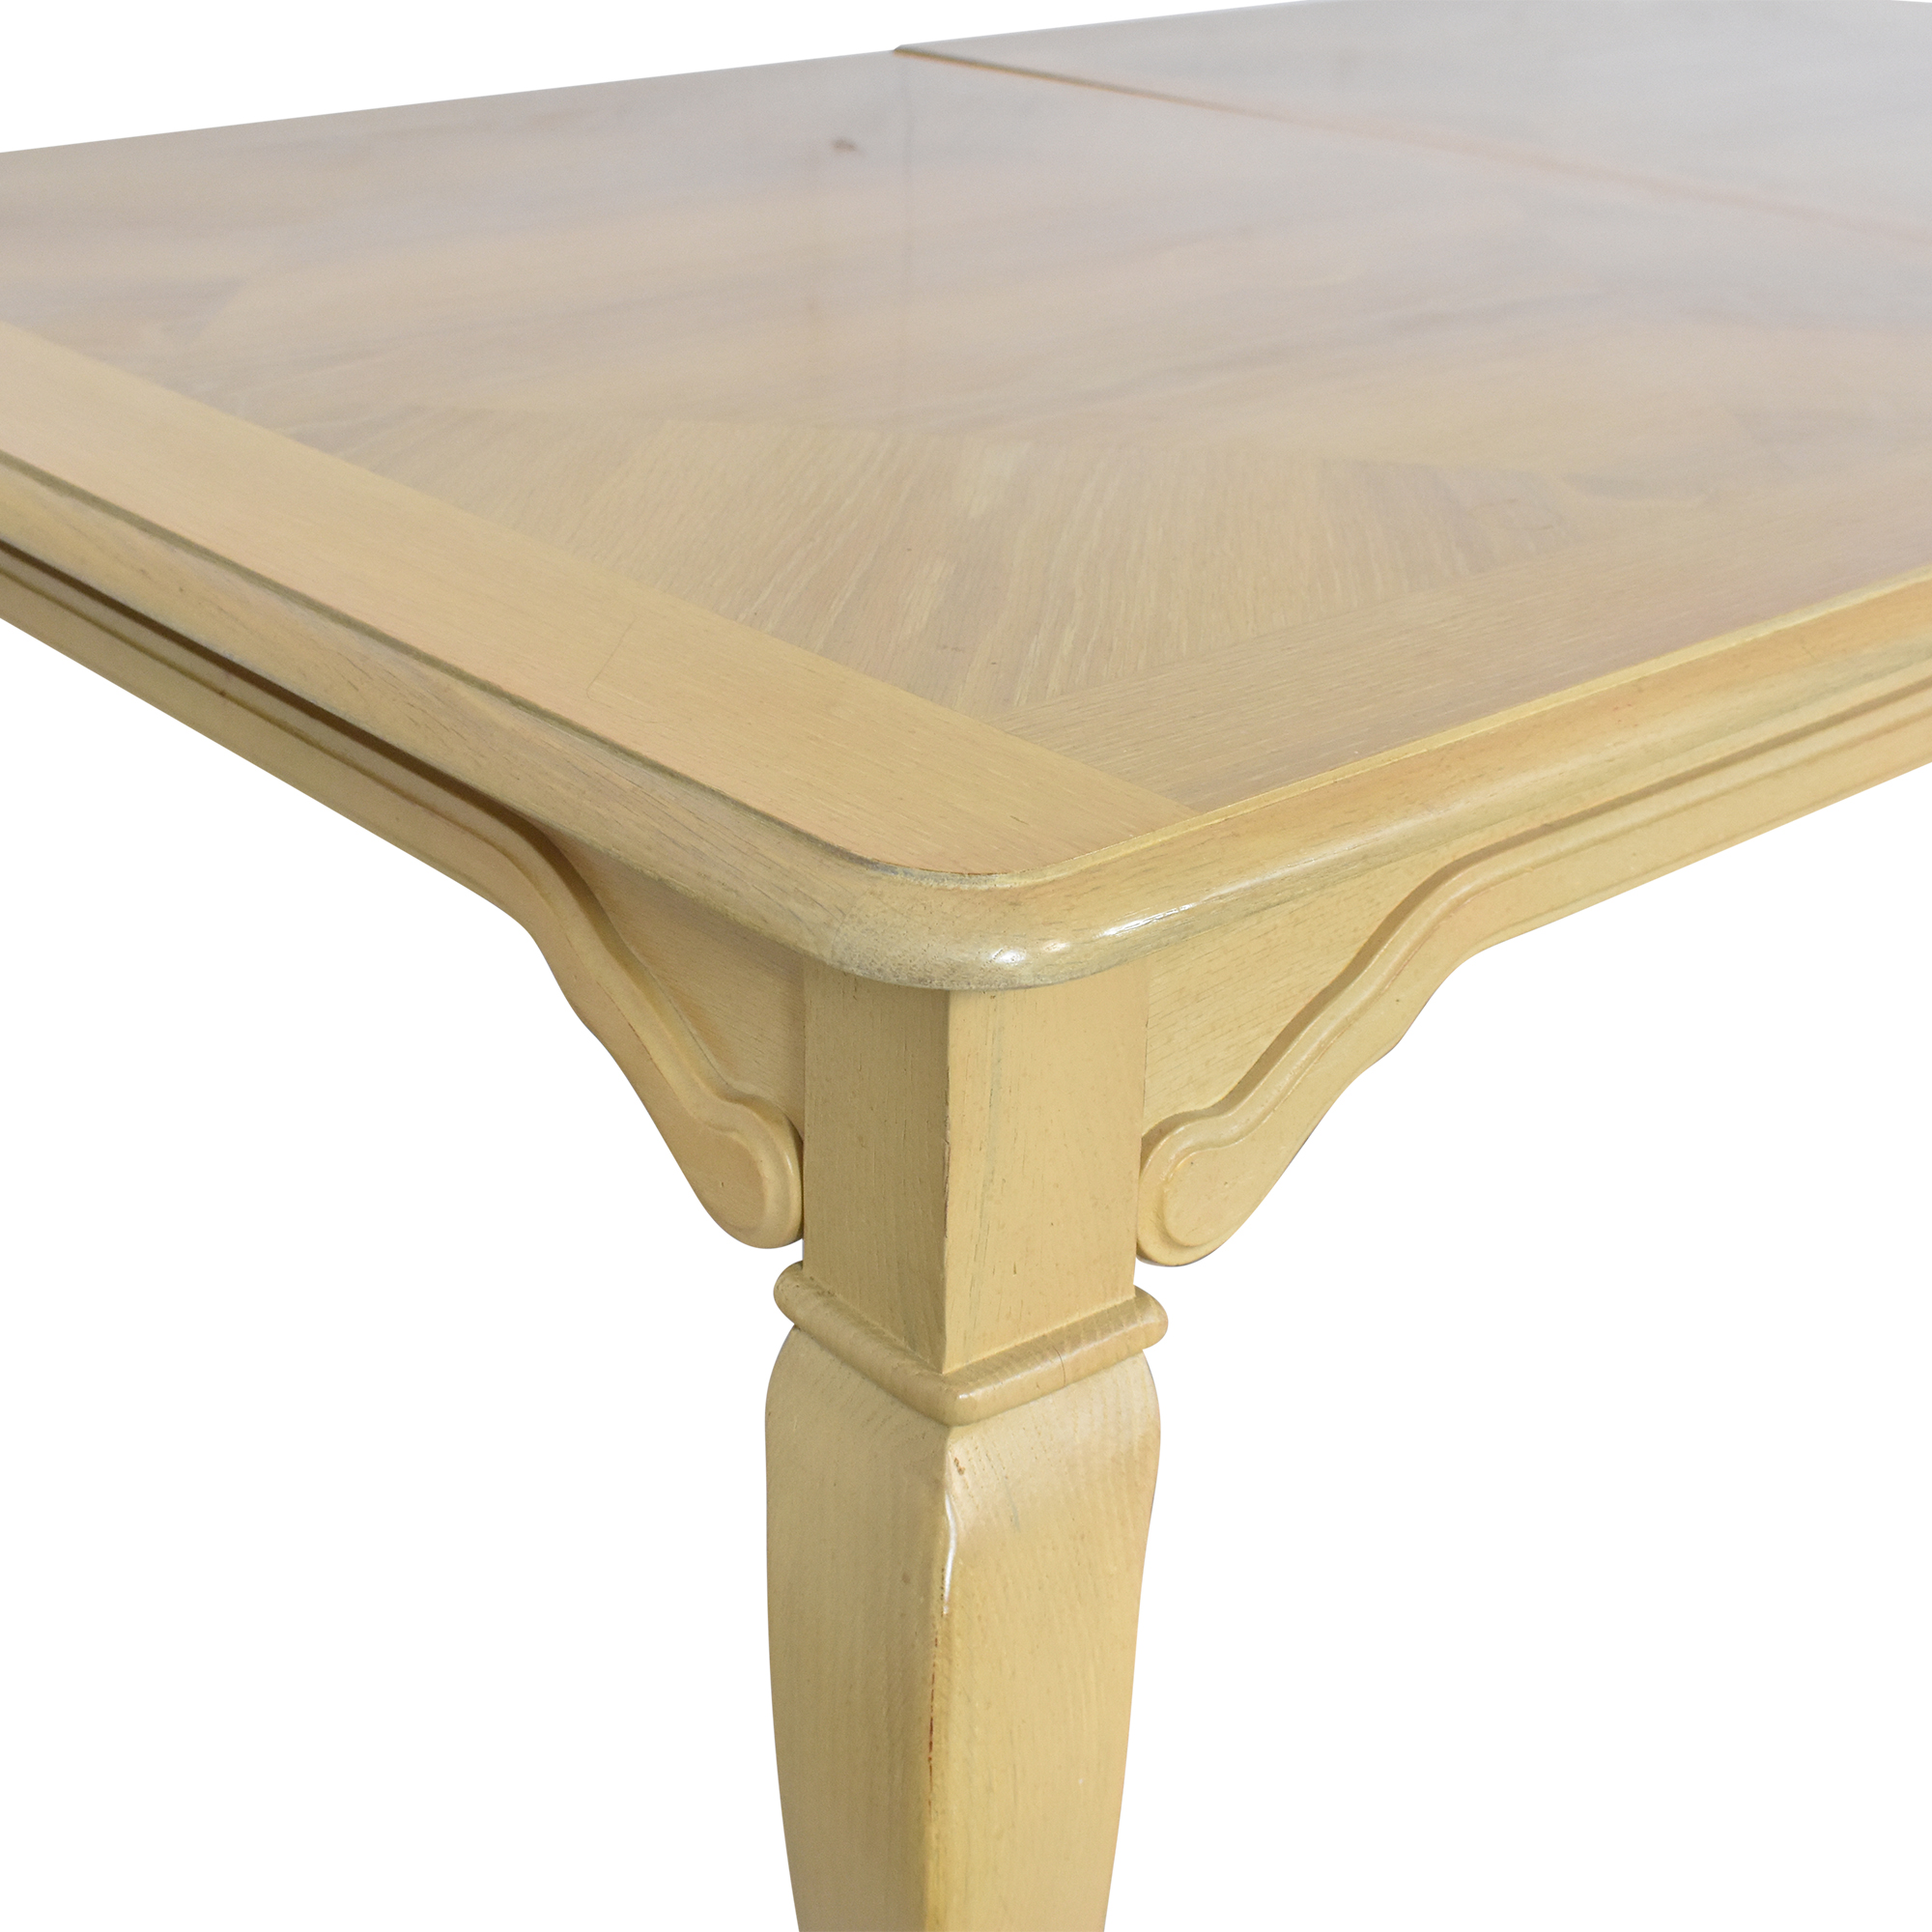 Thomasville Thomasville Extending Cabriole Dining Table dimensions